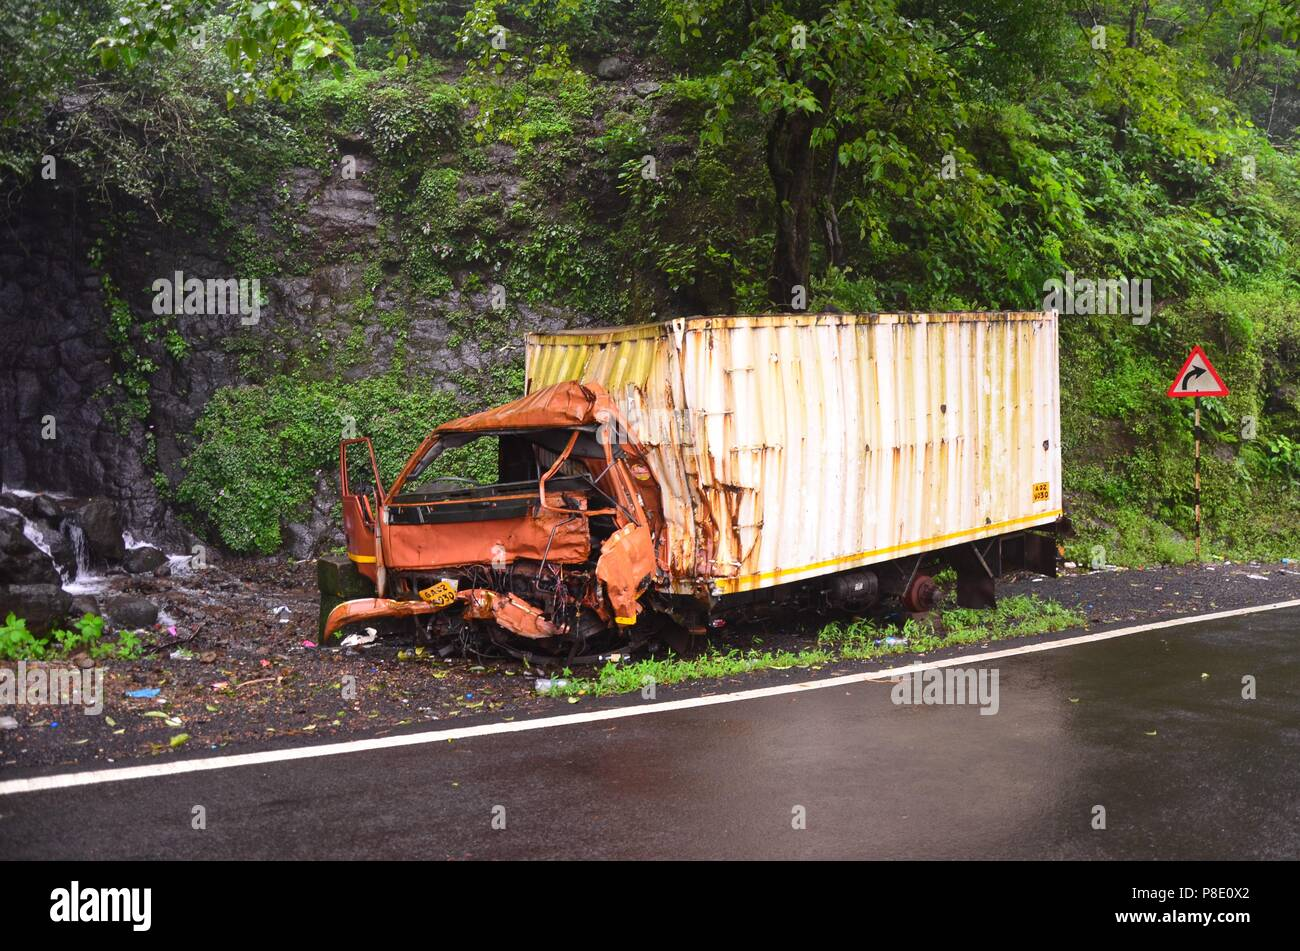 India Truck Accident Stock Photos & India Truck Accident Stock